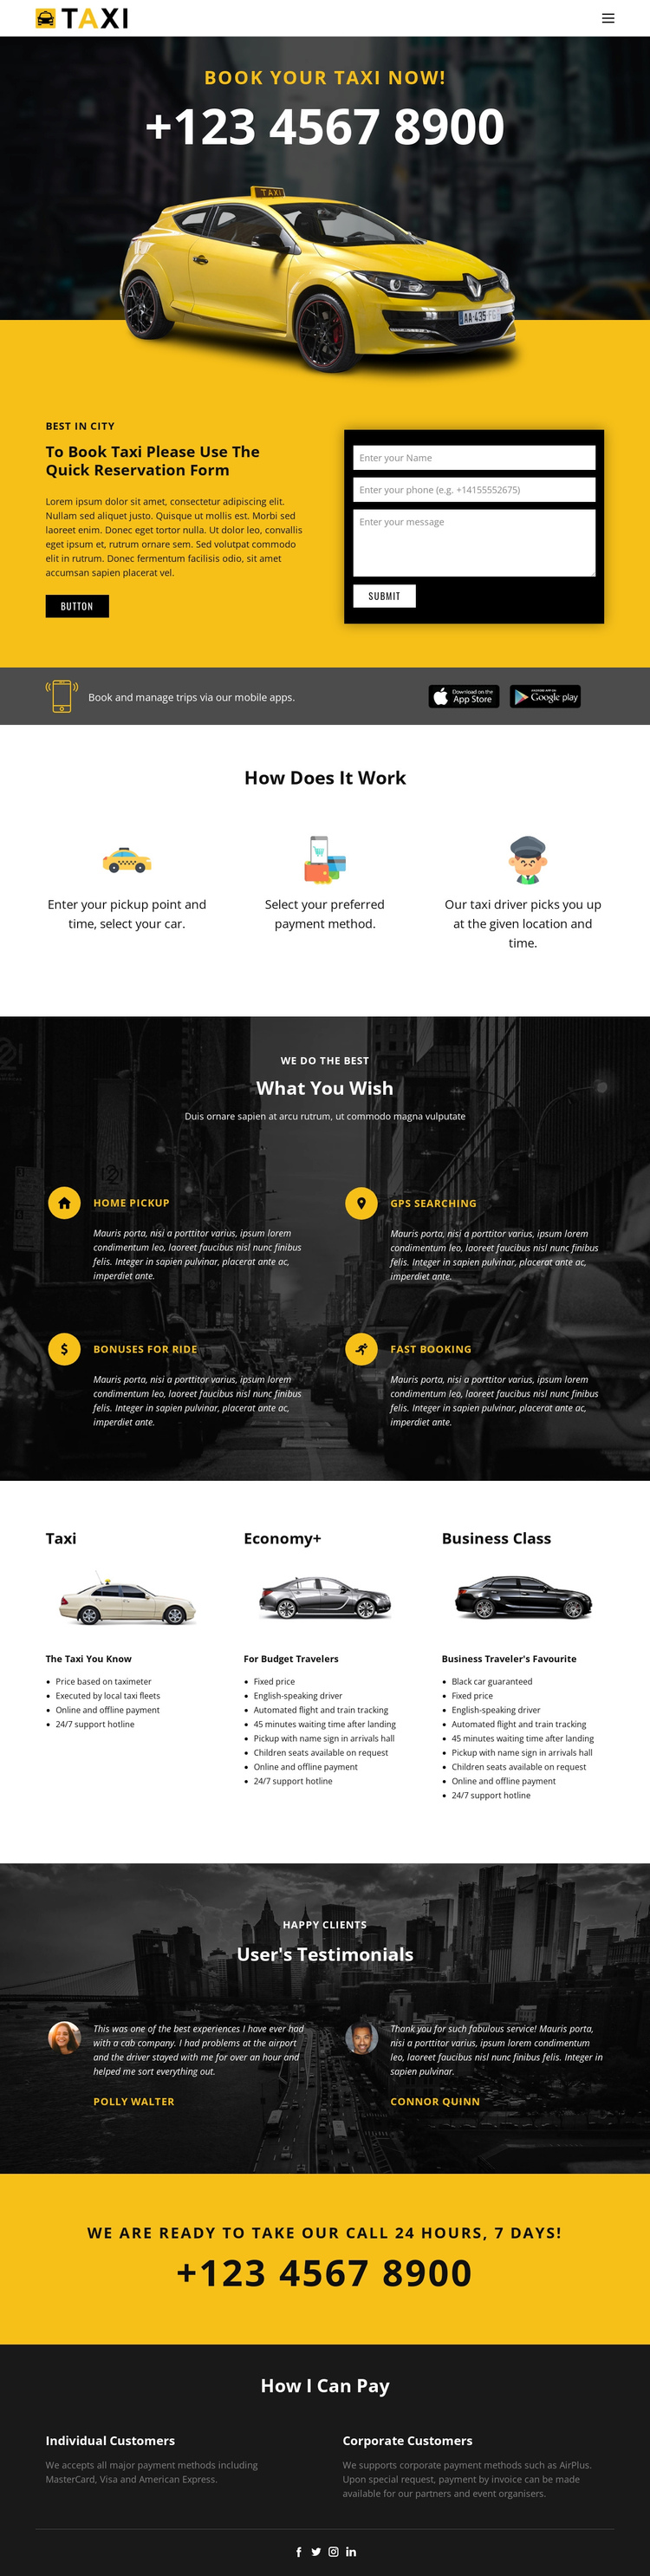 Fastest taxi cars Website Builder Software